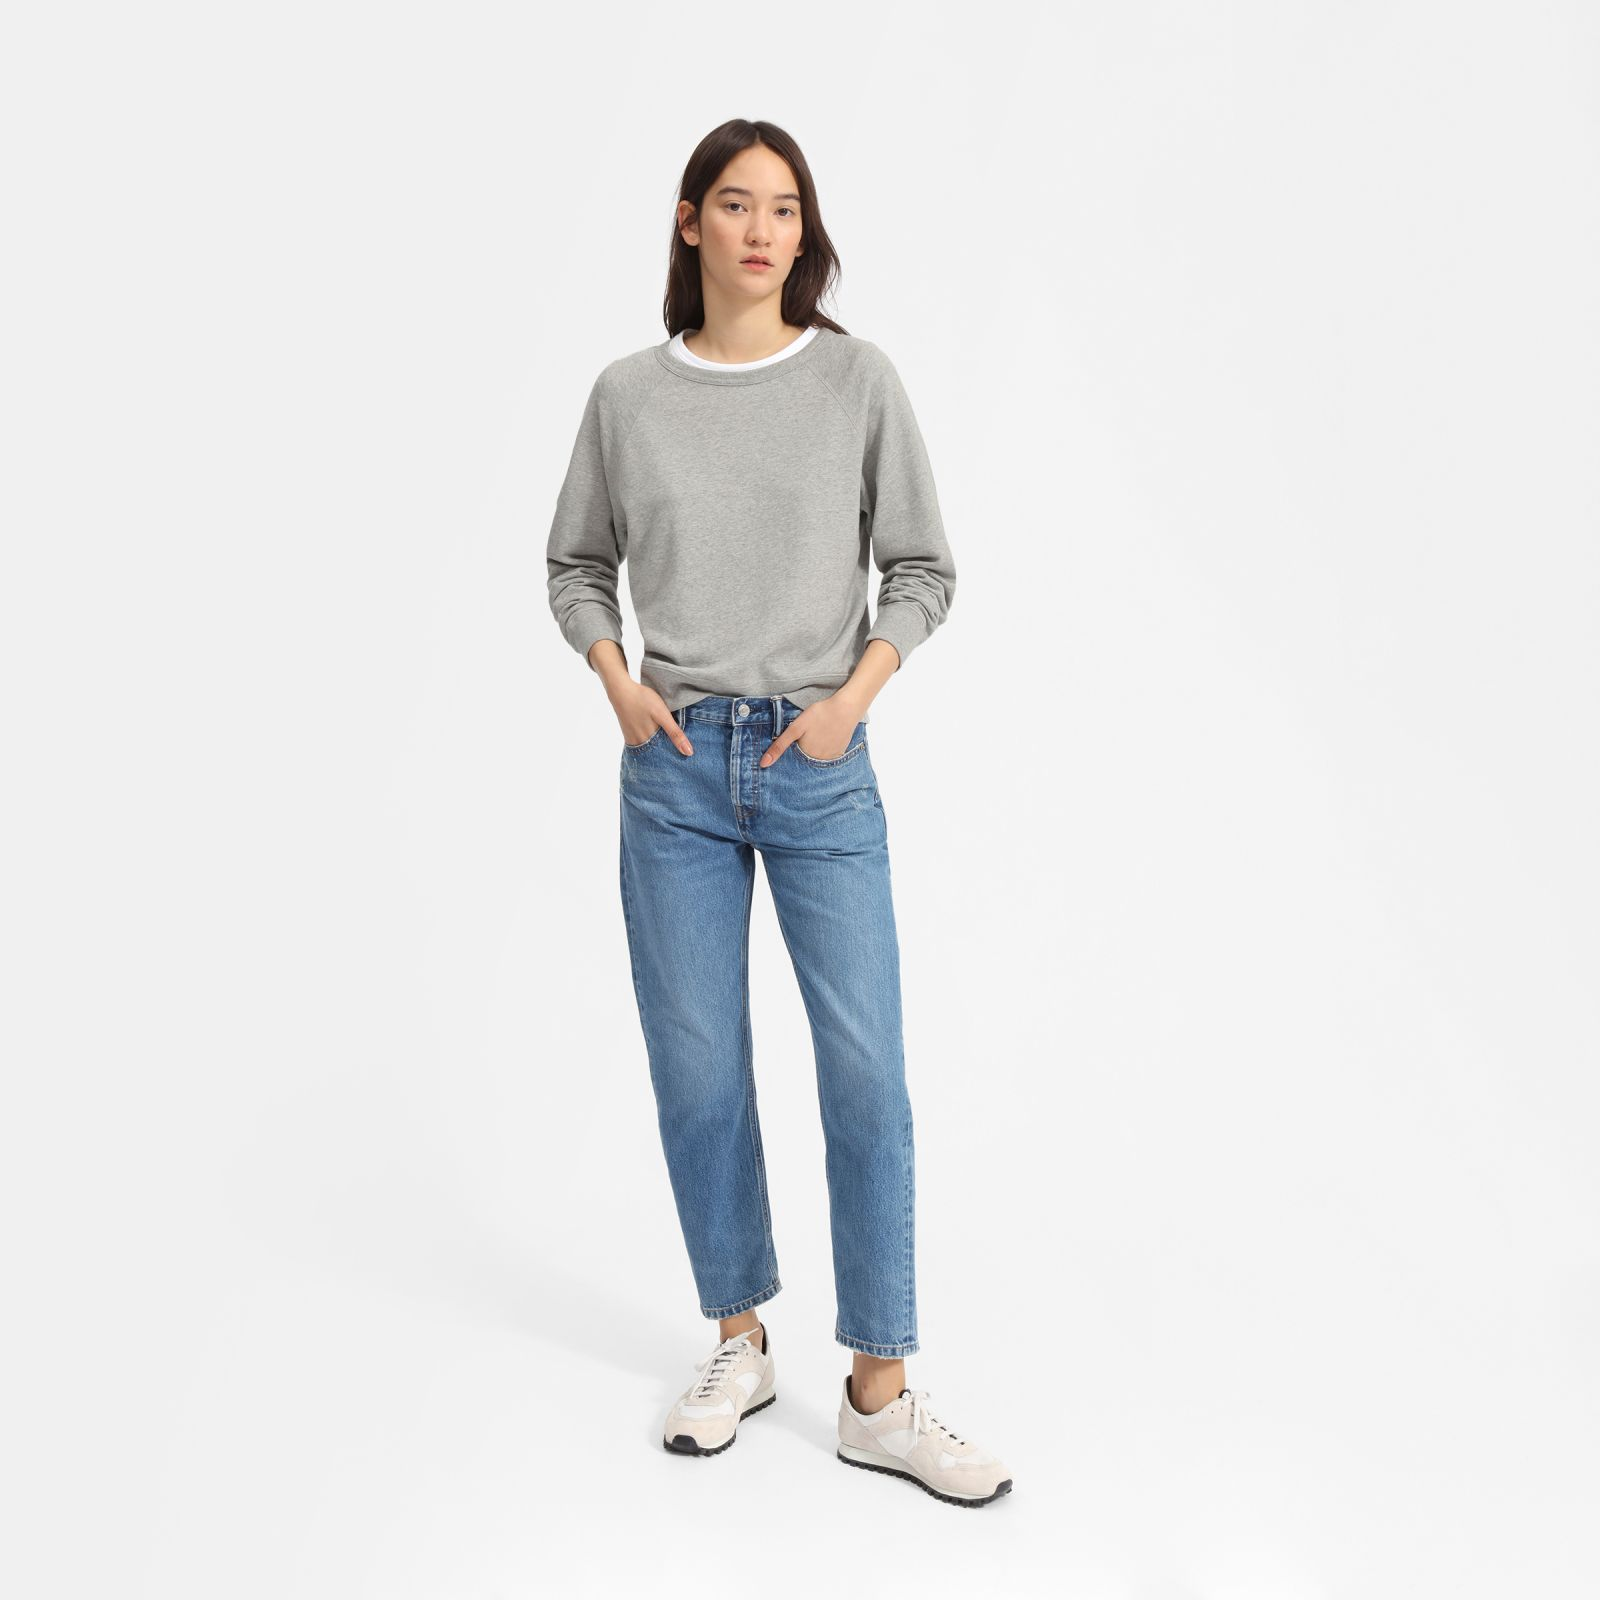 women's lightweight french terry crew sweater by everlane in heather grey, size xl